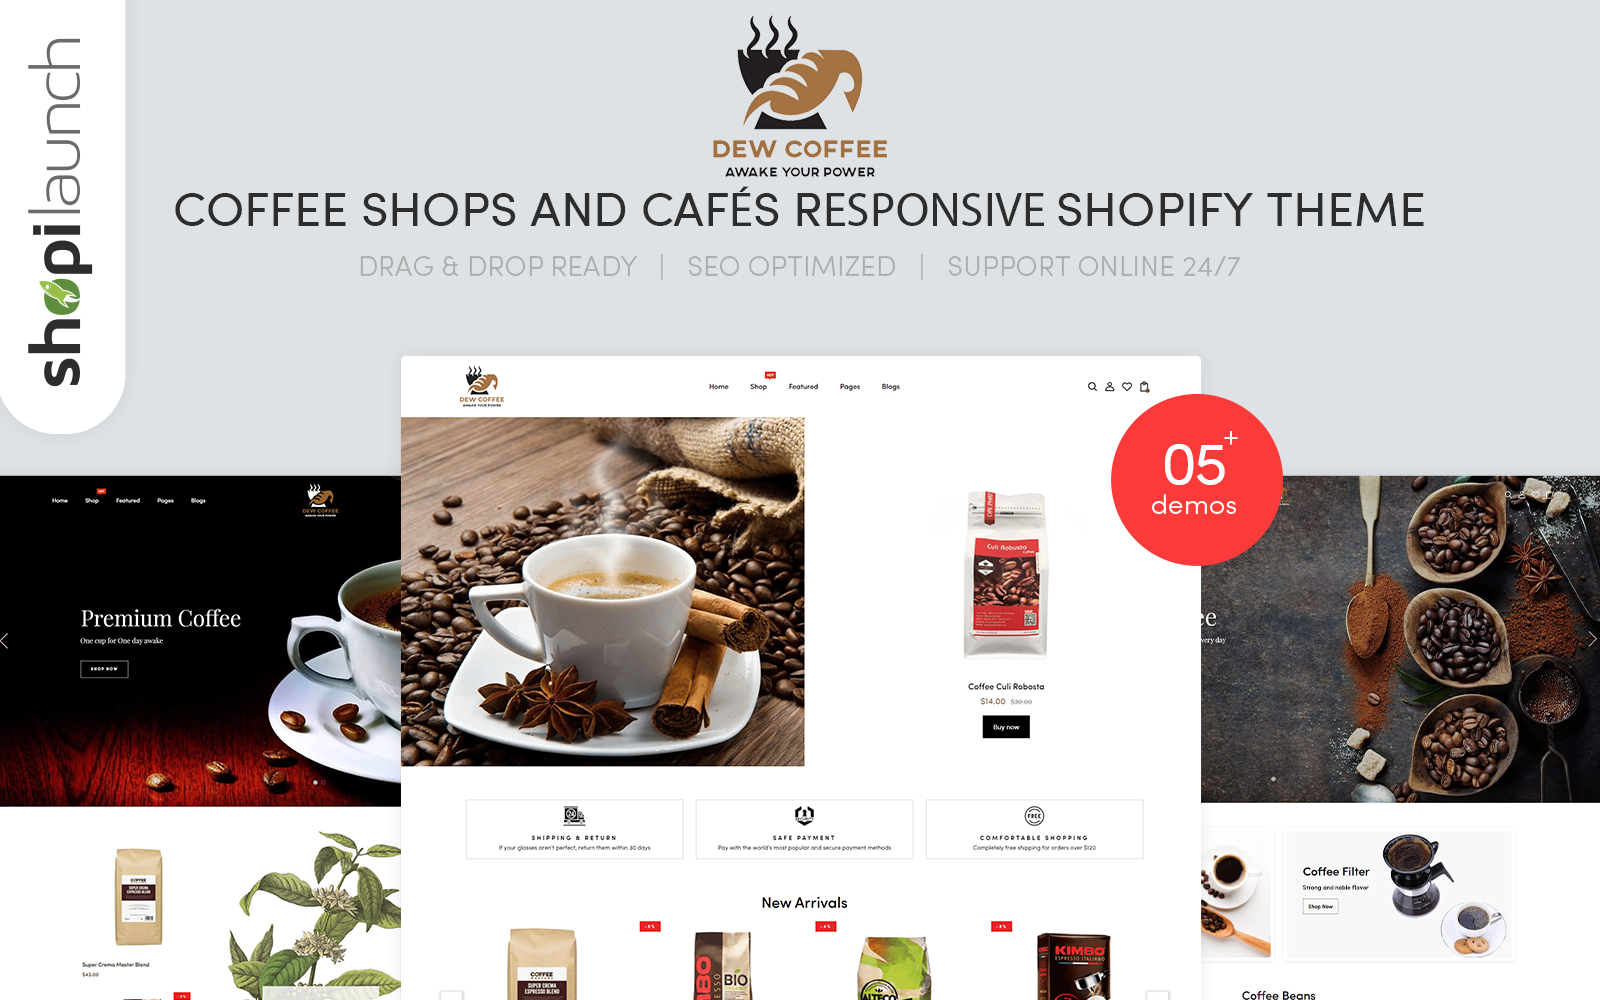 """""""DewCoffee - Coffee Shops & Cafes Responsive"""" 响应式Shopify模板 #146795"""